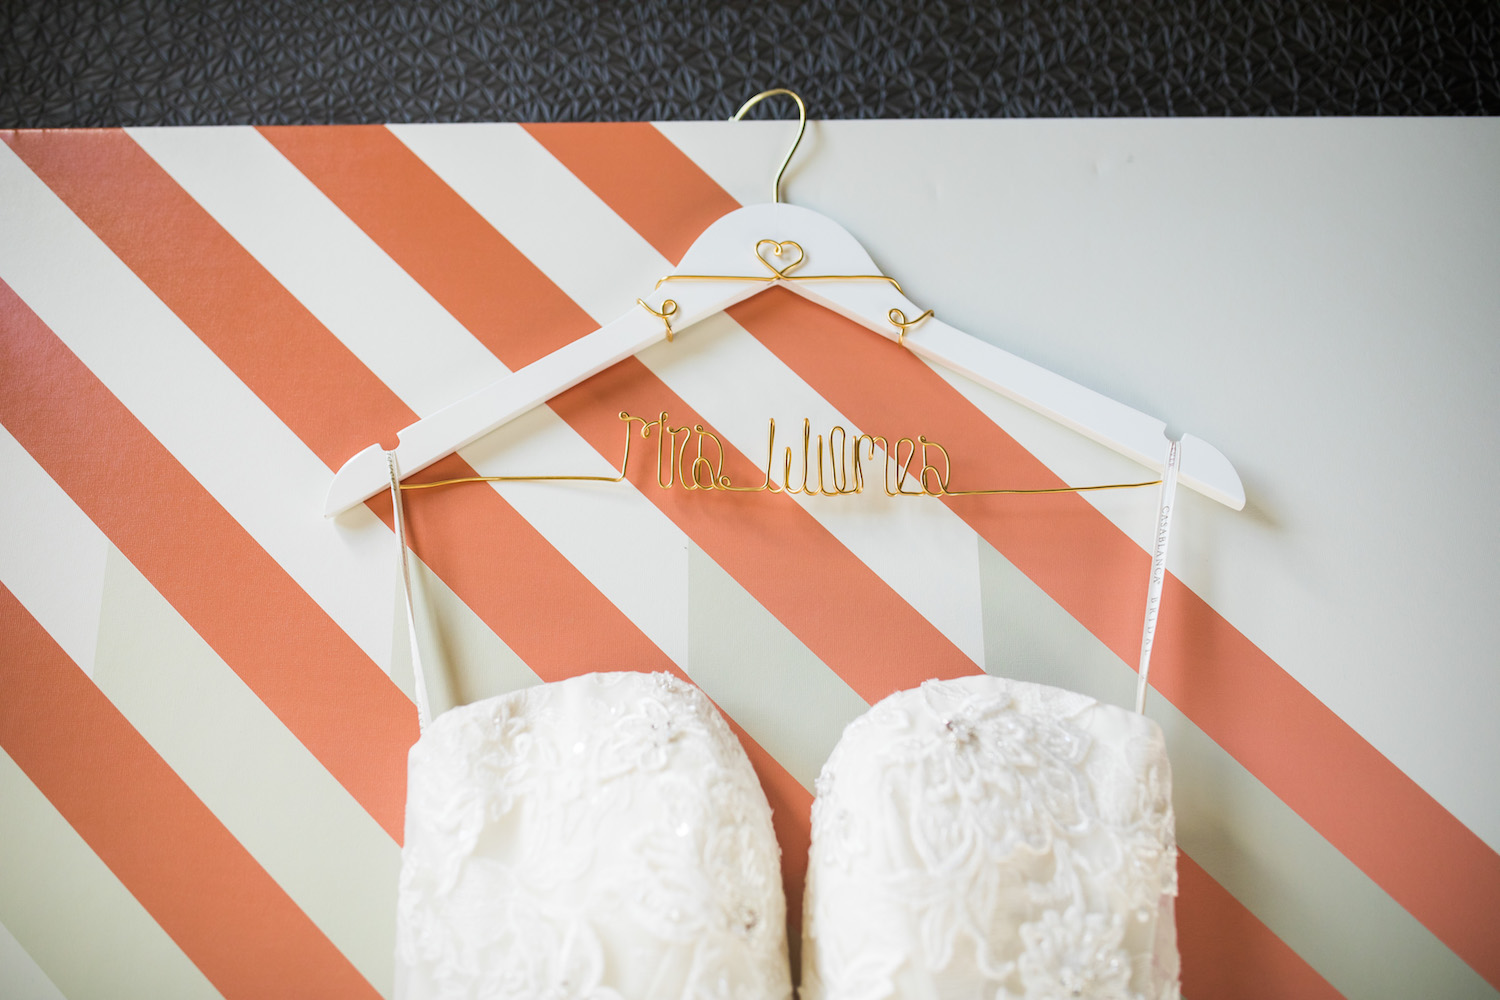 City Flats Hotel wedding bridal hanger and gown